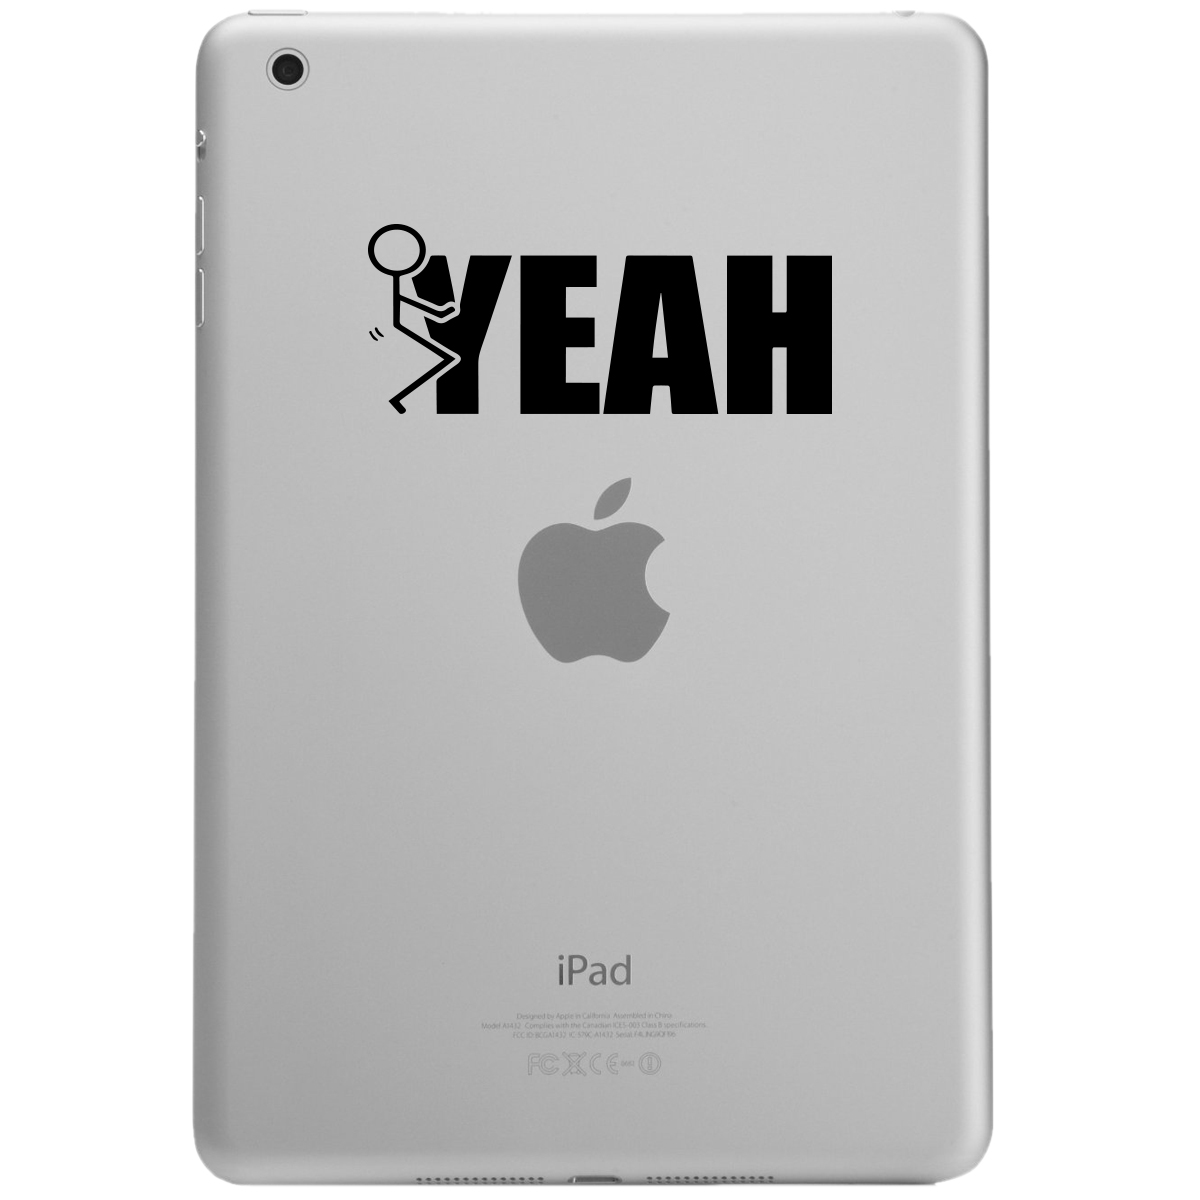 Funny Humping Stick Figure F*ck Yeah iPad Tablet Vinyl Sticker Decal